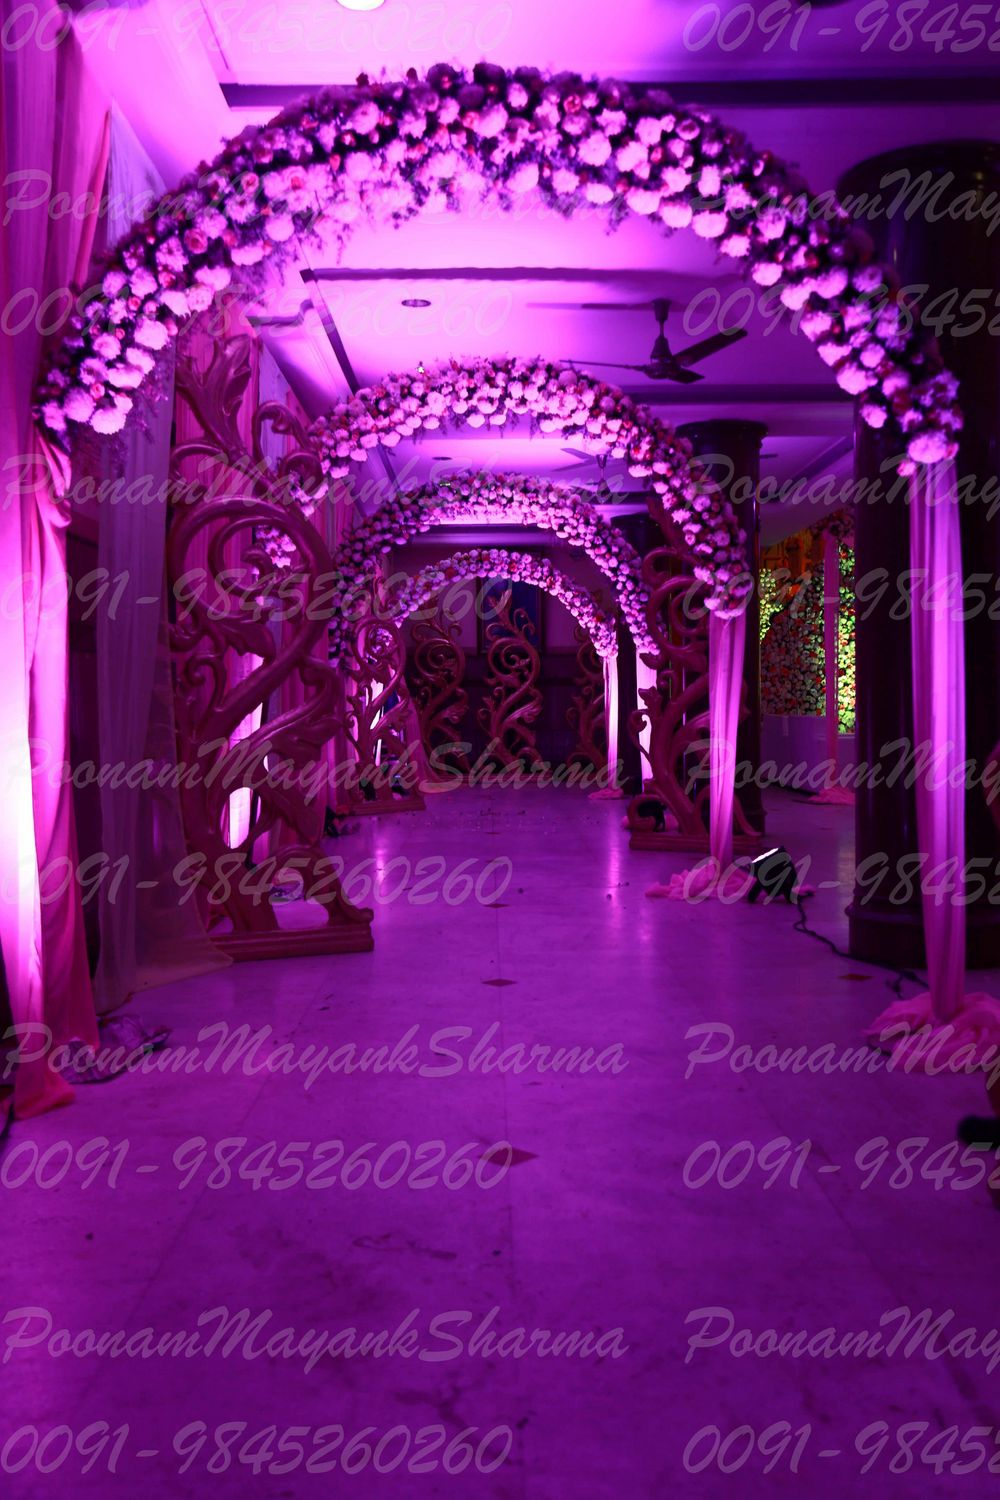 Photo From An artistic Wedding - By Poonam Mayank Sharma